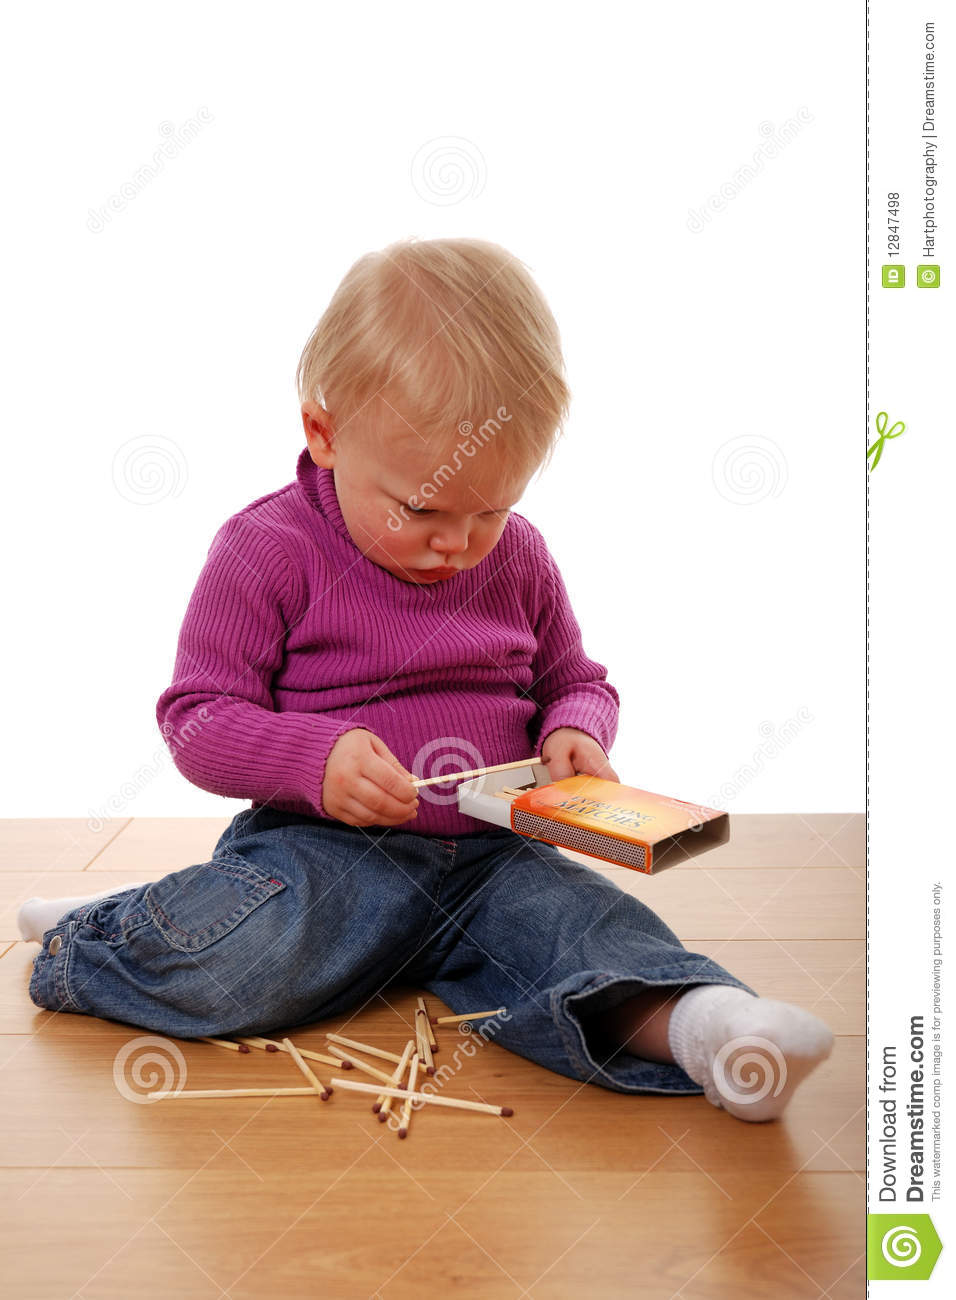 Toddler Playing With Matches Royalty Free Stock Photos - Image ...